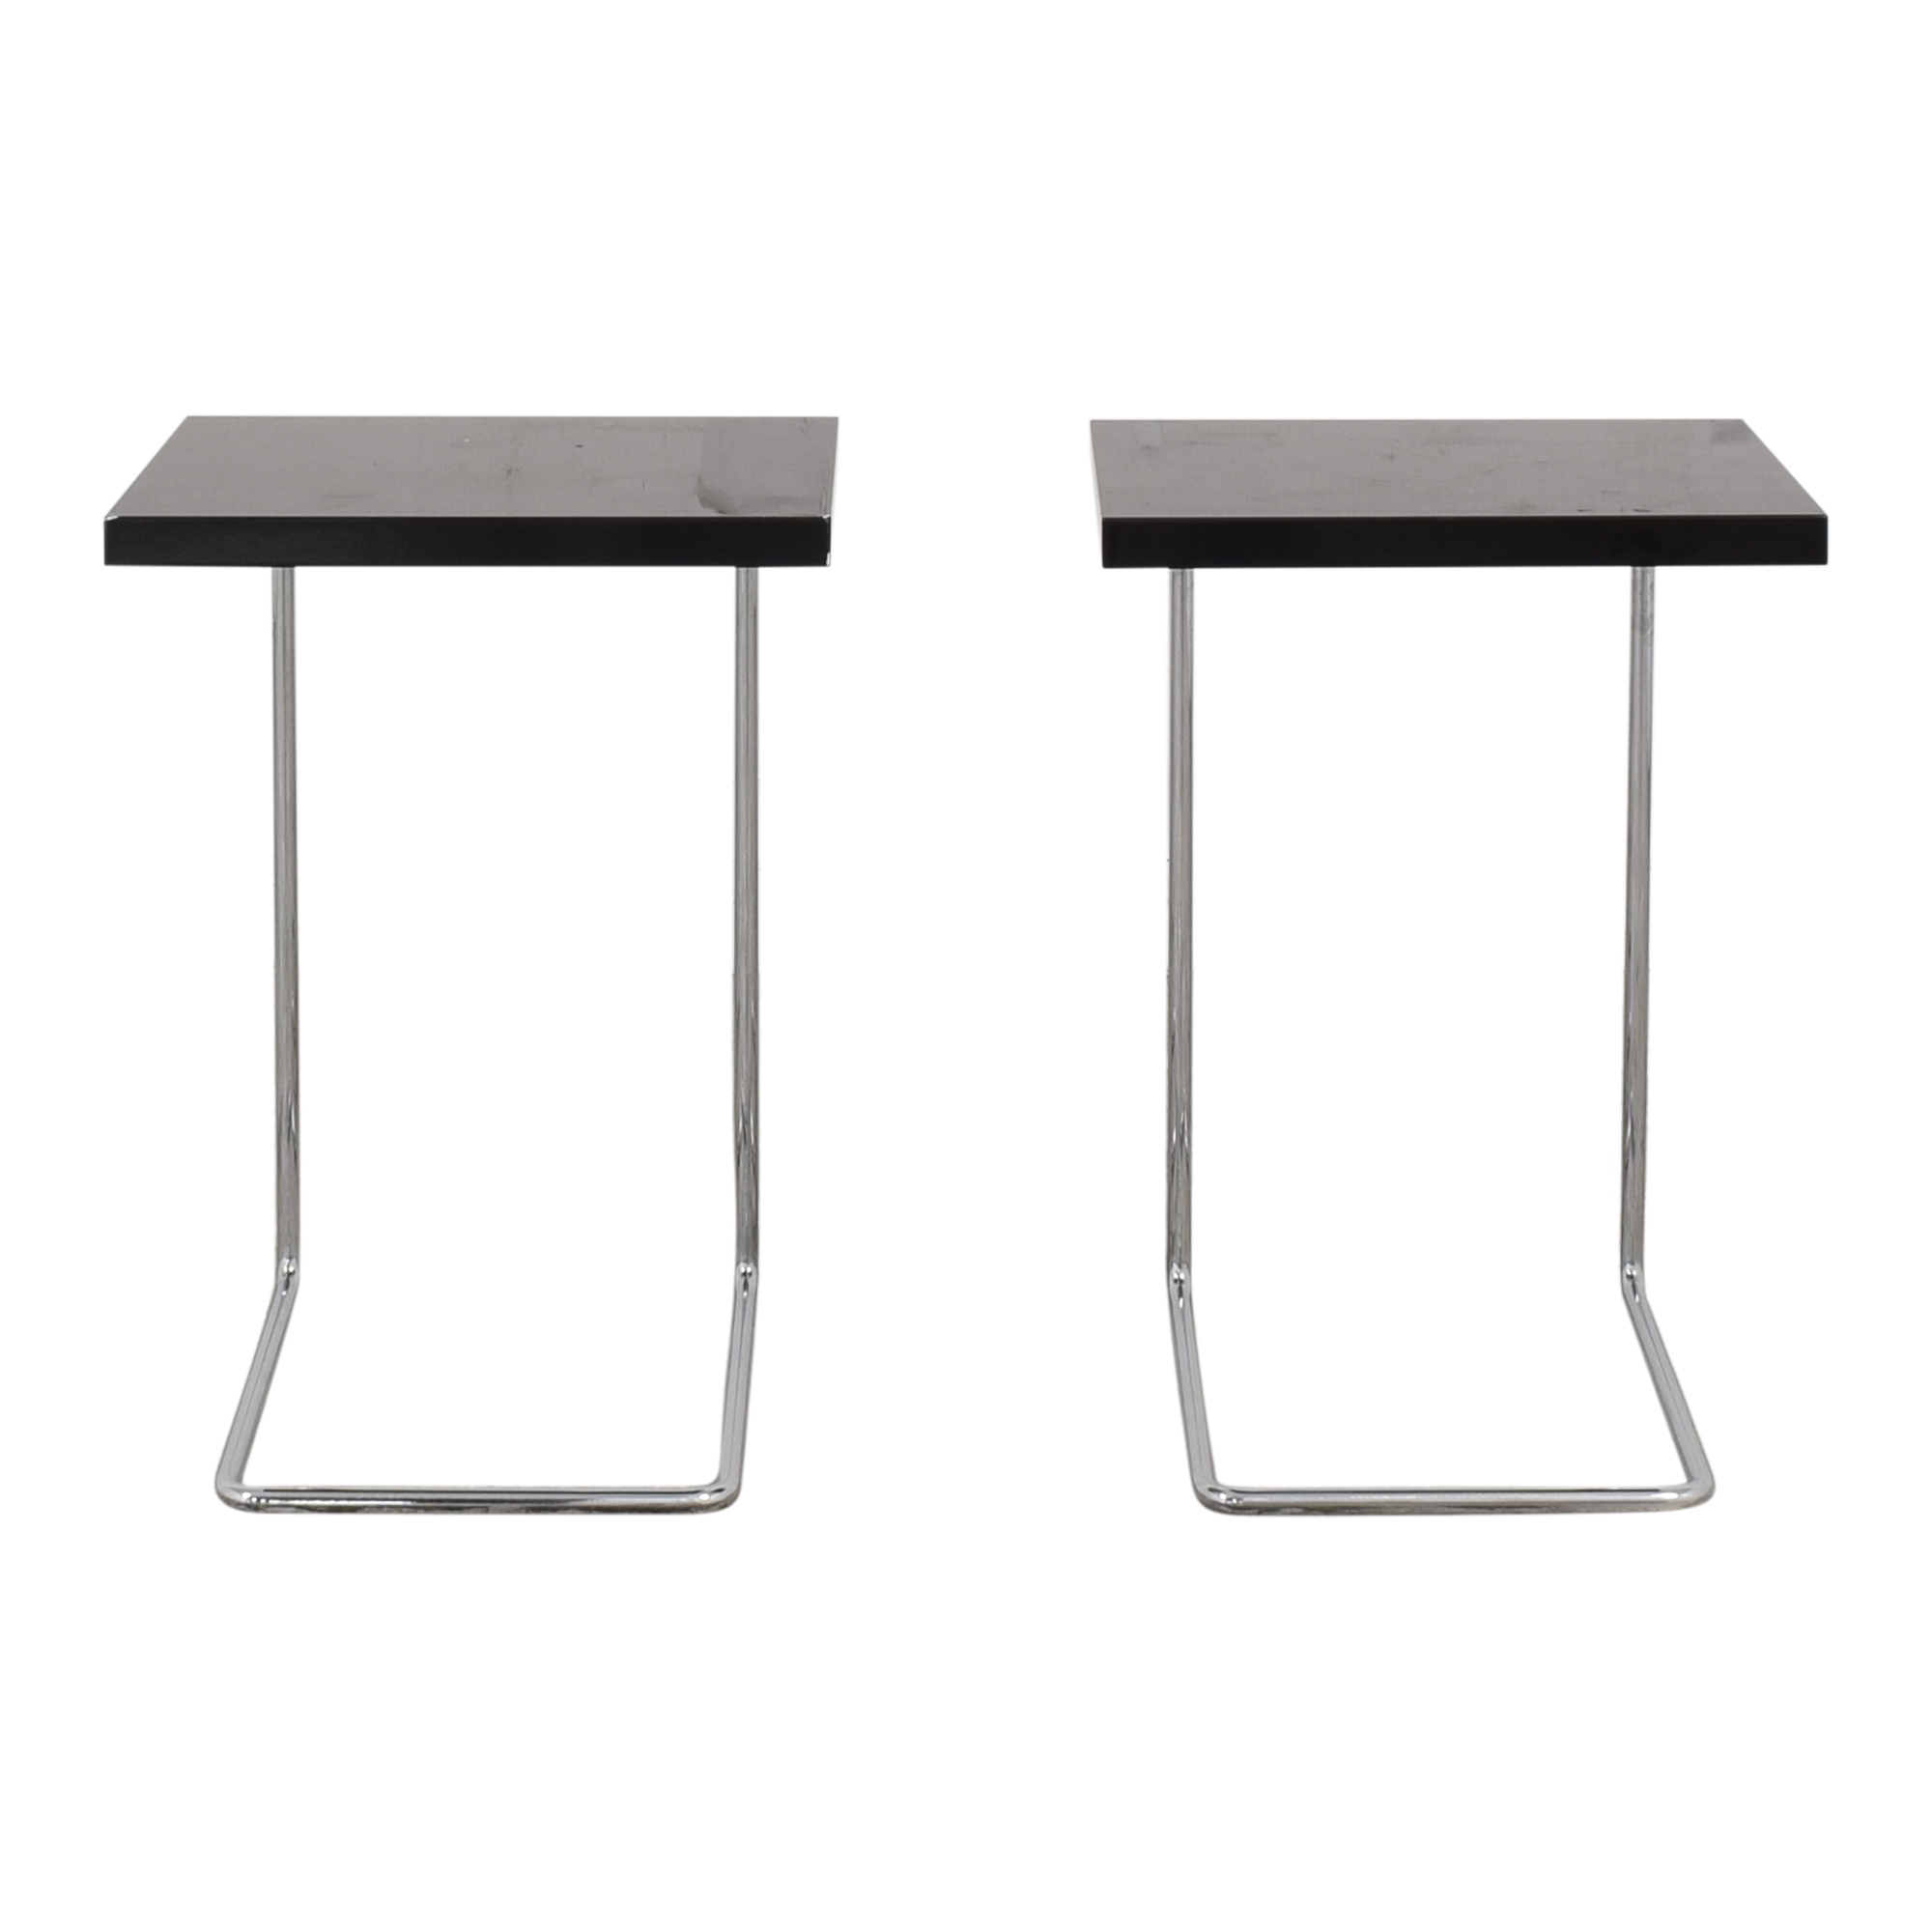 Koleksiyon Koleksiyon Bremen End Tables End Tables